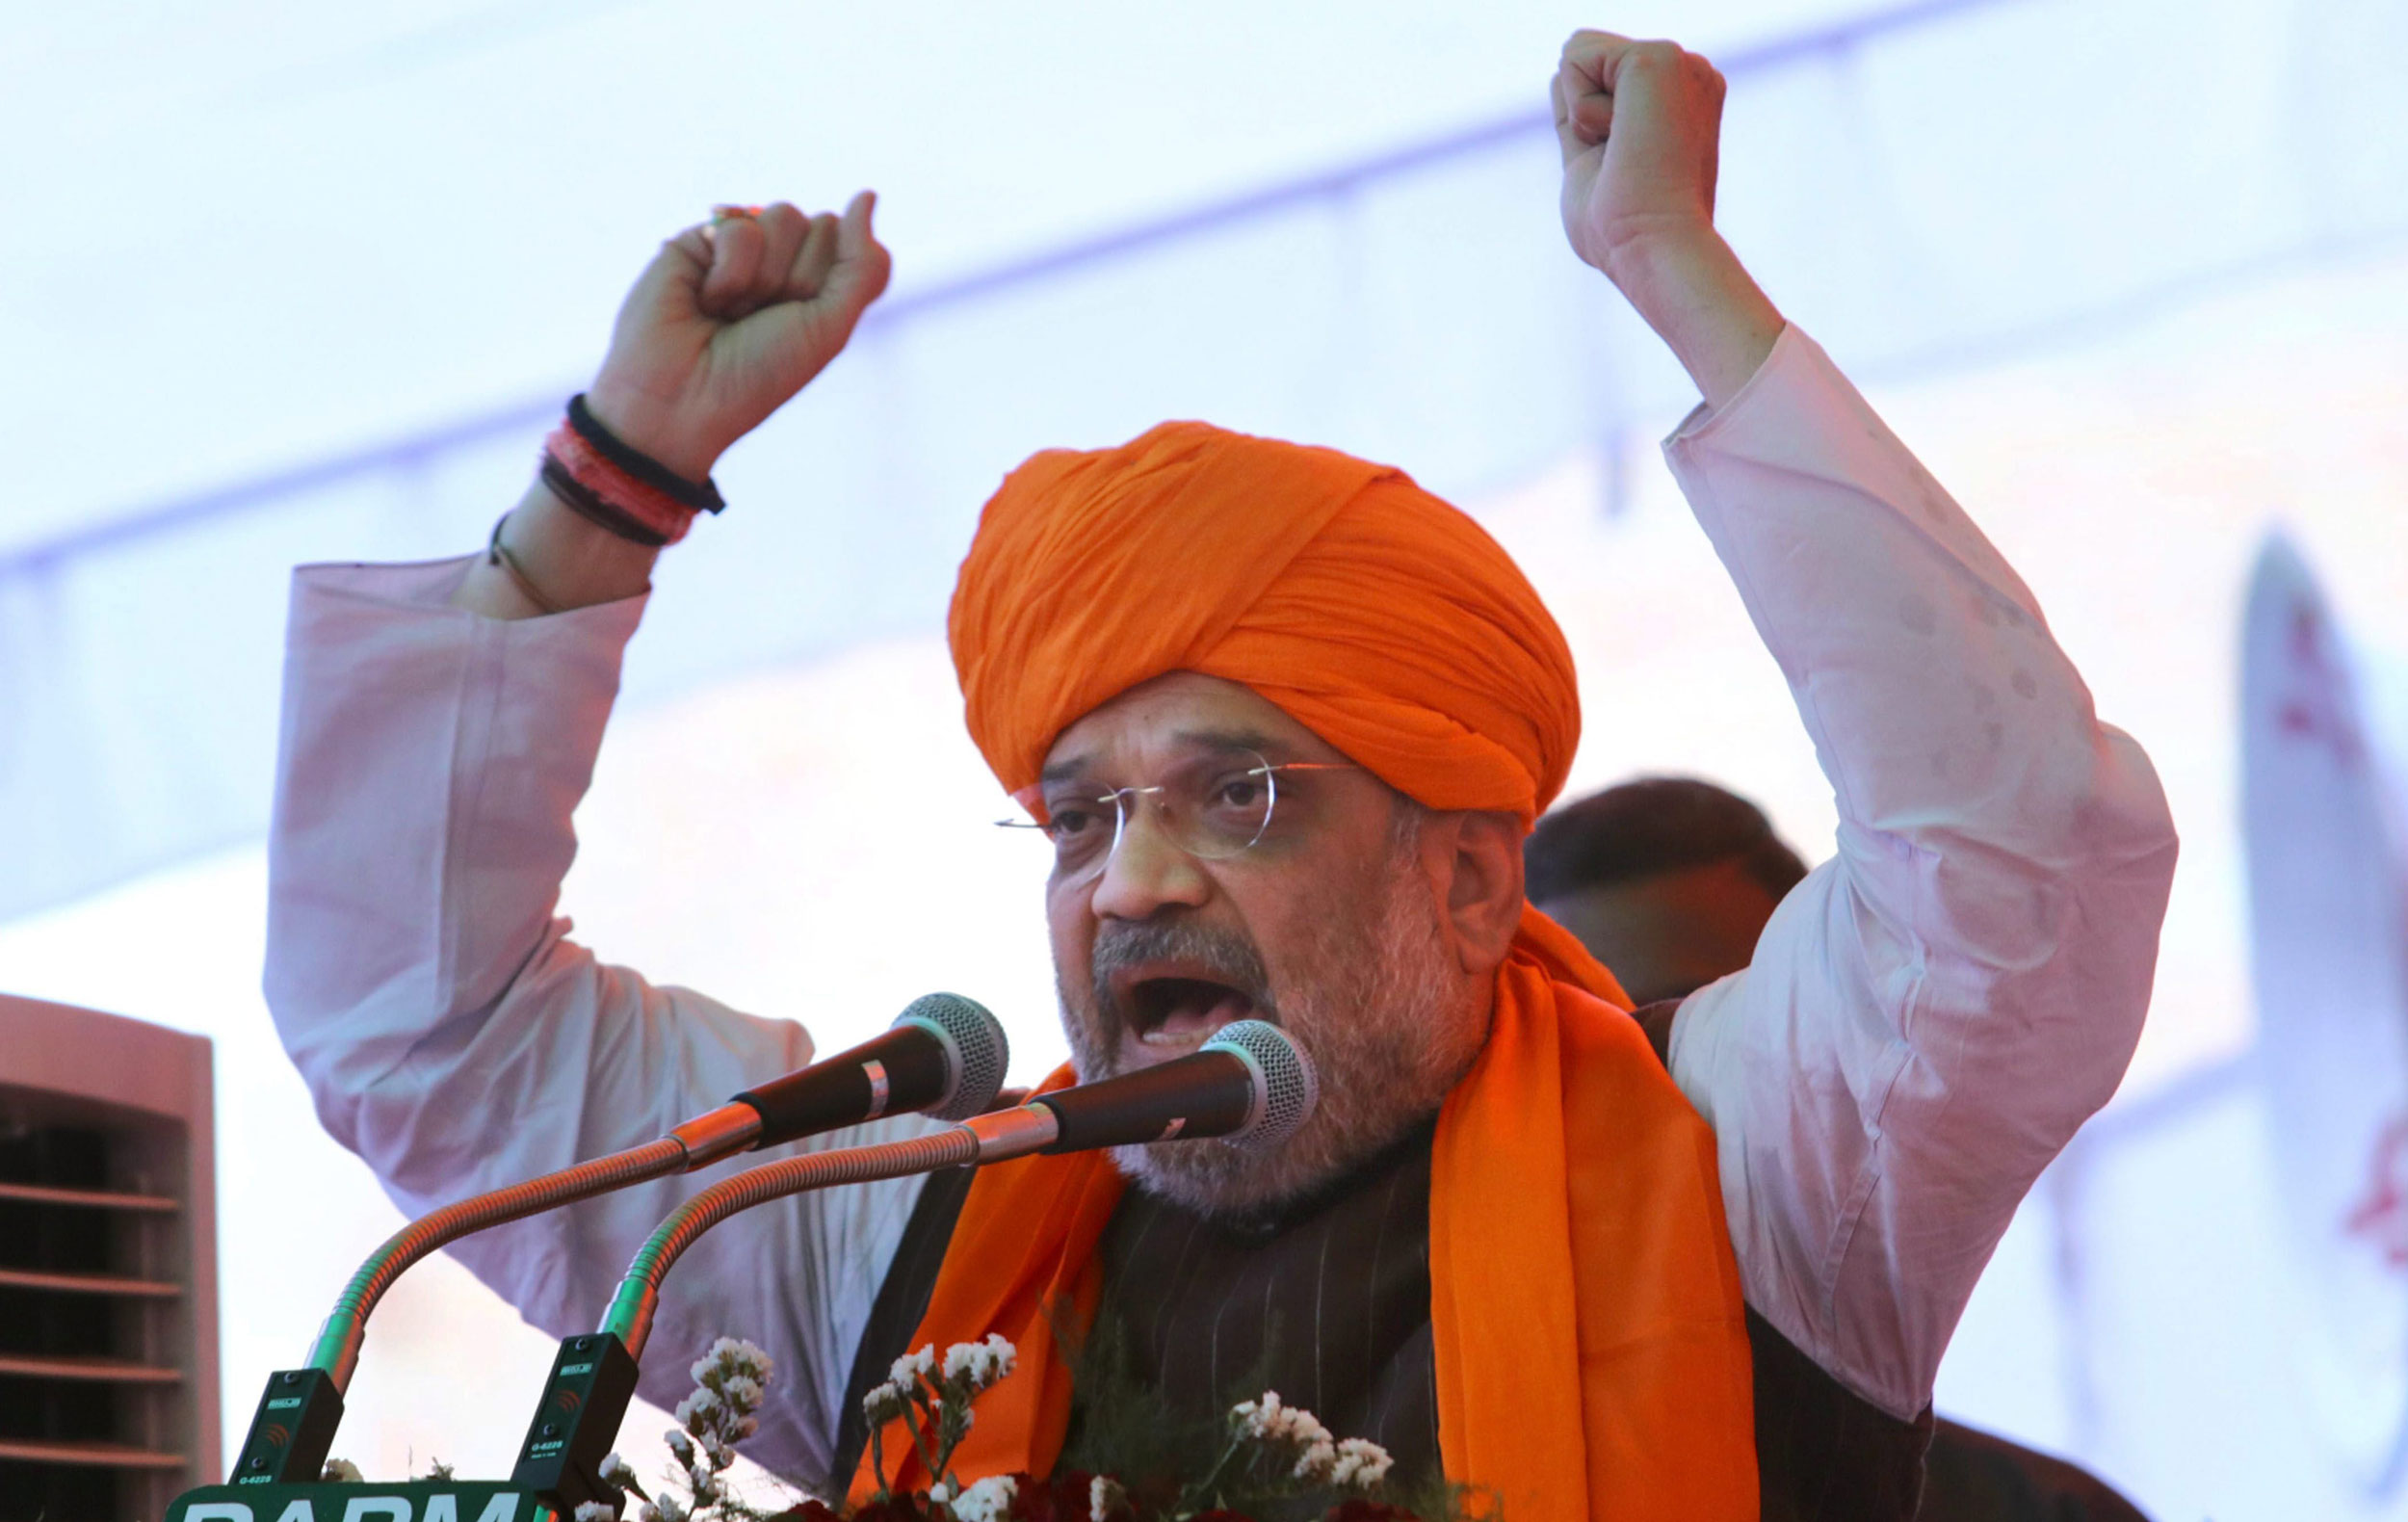 Amit Shah stood atop a decorated truck along with BJP's north and south Calcutta's candidates Rahul Sinha and Chandra Kumar Bose respectively.